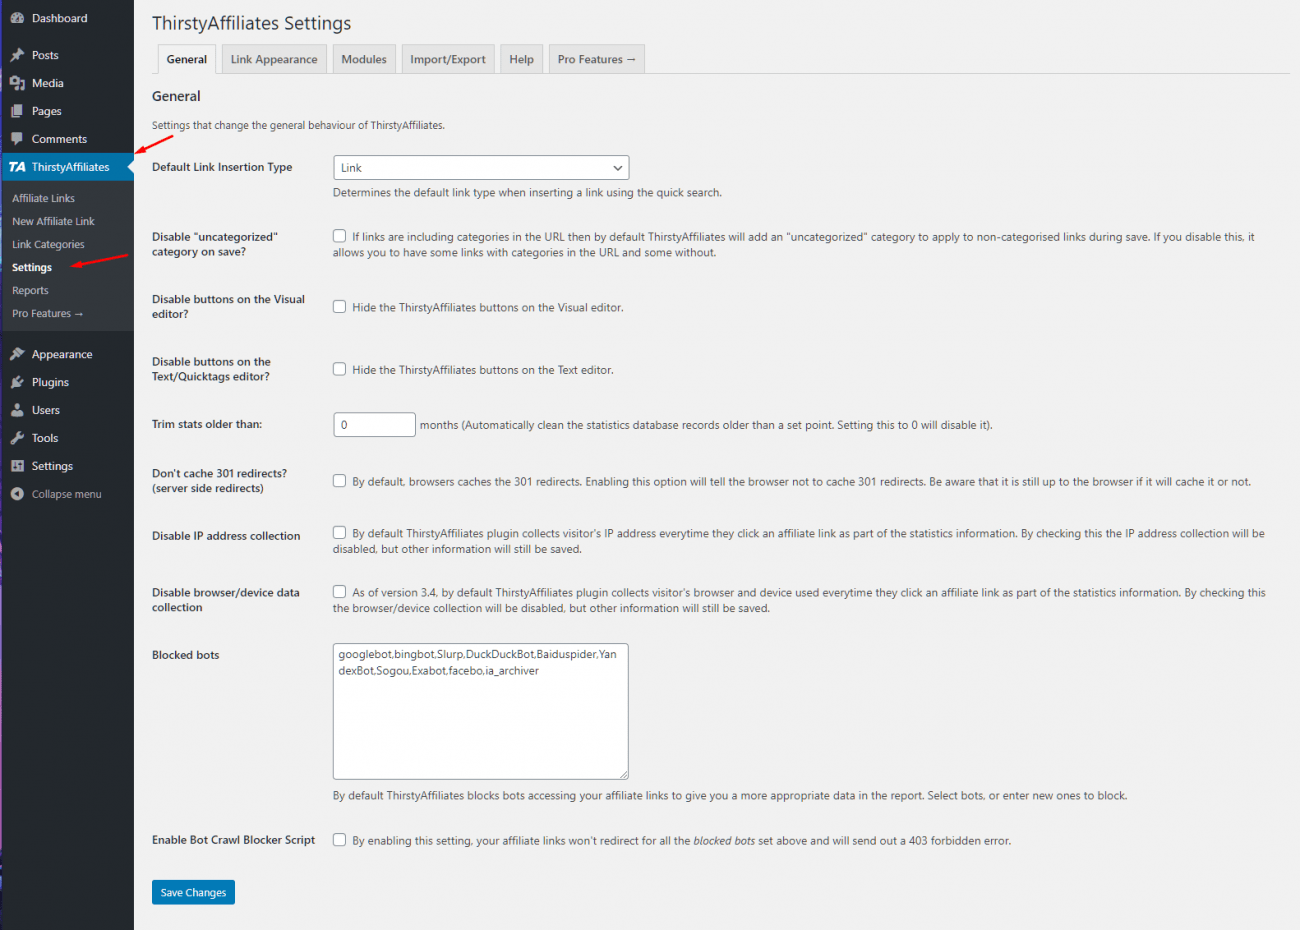 The settings of ThirstyAffiliates